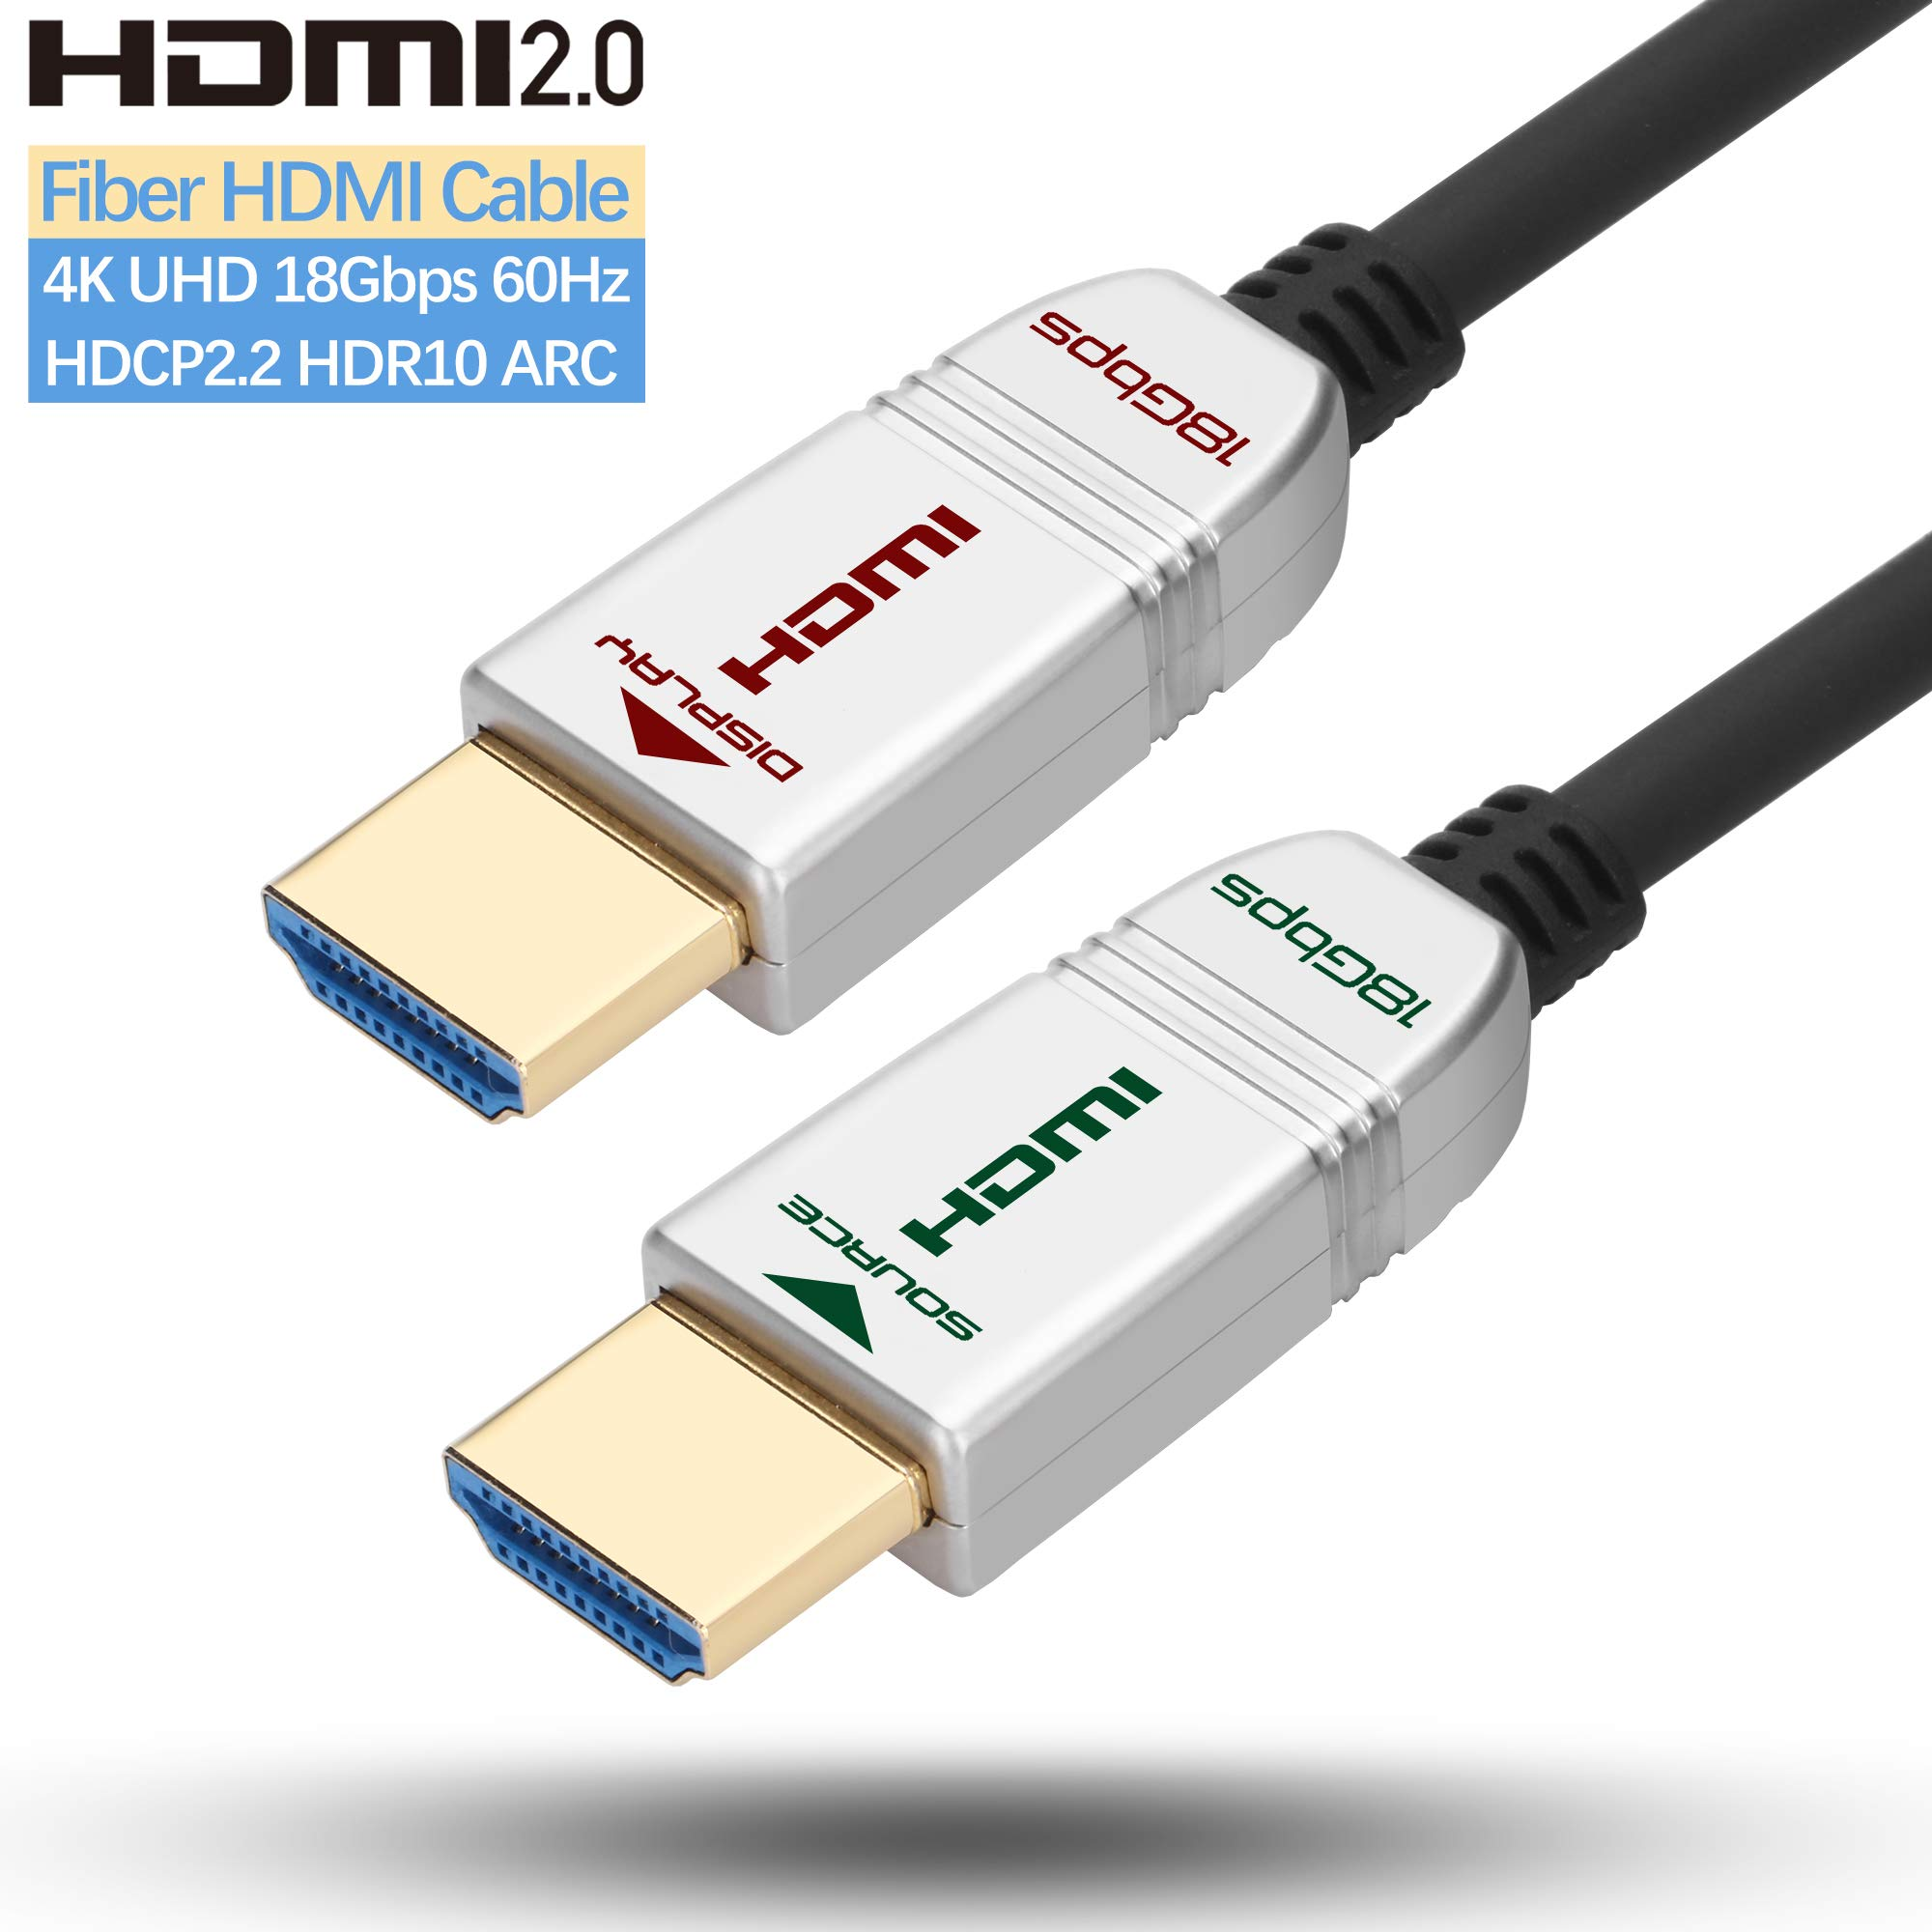 HDMI Fiber Cable 35ft 4K 60Hz, FeizLink HDMI Cable Fiber Optic High Speed 18Gbps UHD HDR ARC HDCP2.2 3D Dolby Vision Slim Flexible HDMI Optical Cable for HDTV/TVbox/Gaming Box/Projector by FeizLink